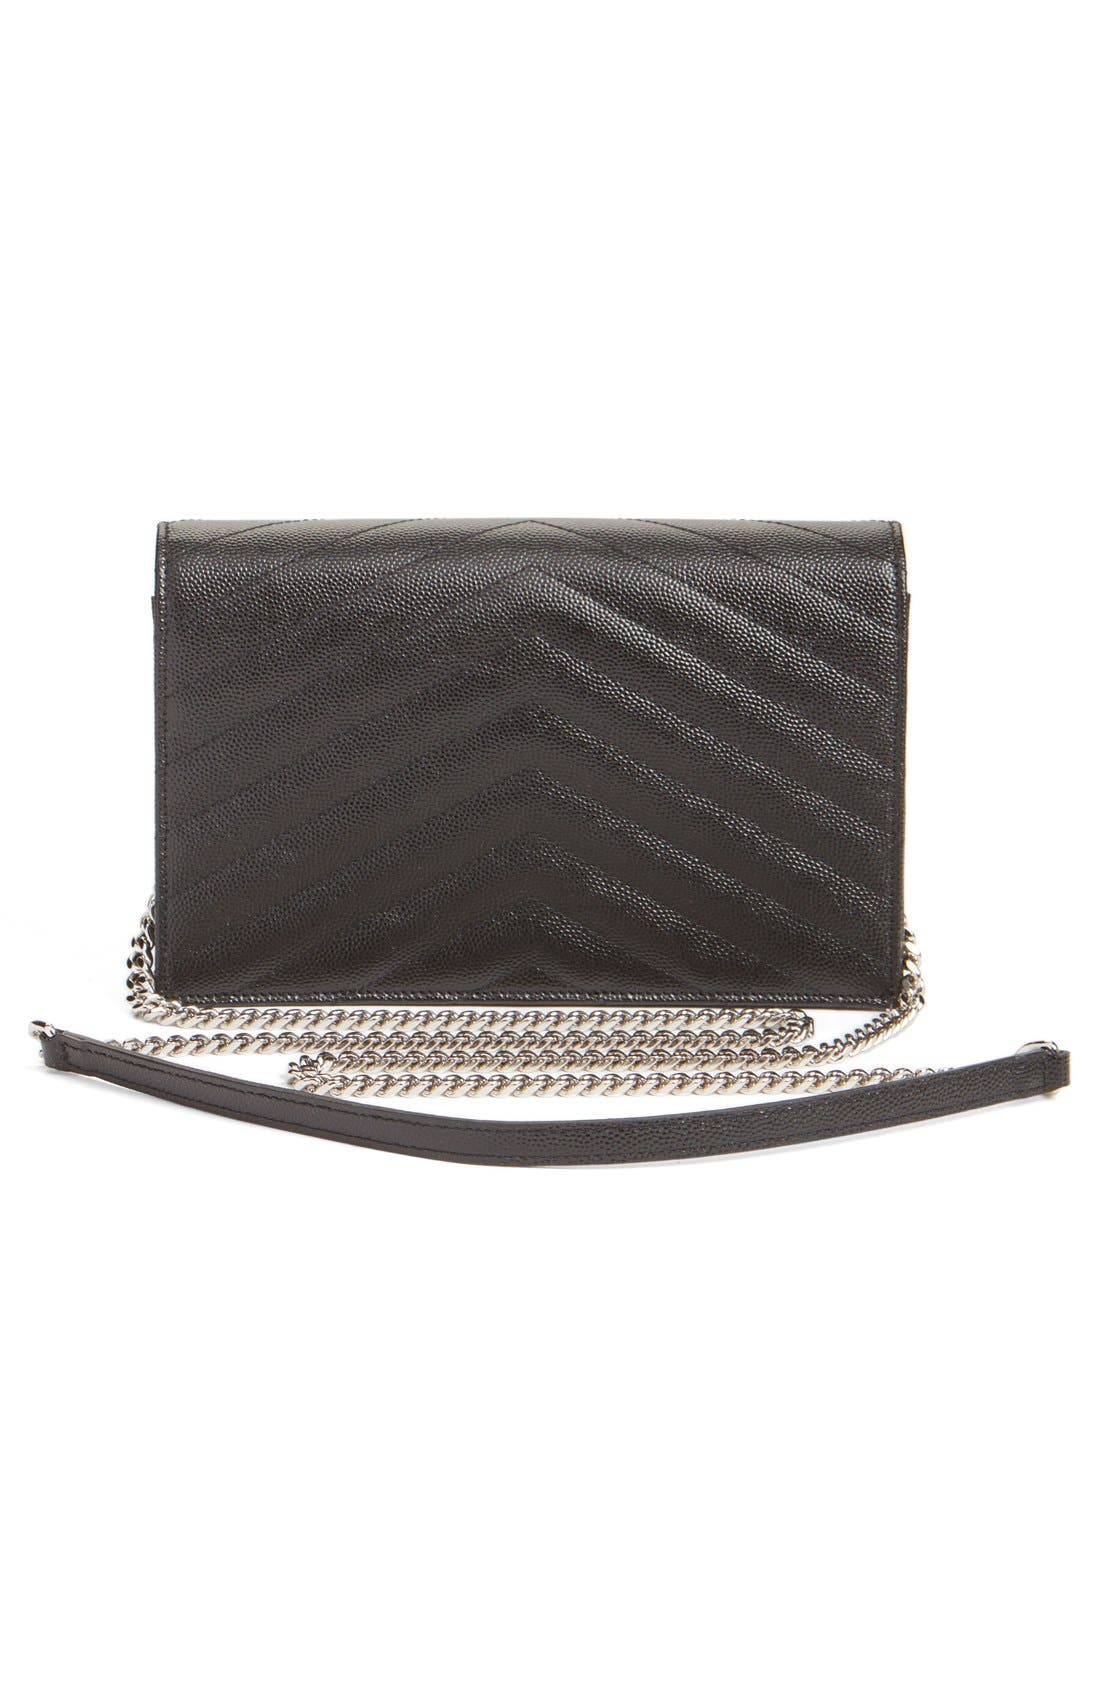 SAINT LAURENT, Quilted Calfskin Leather Wallet on a Chain, Alternate thumbnail 9, color, NOIR